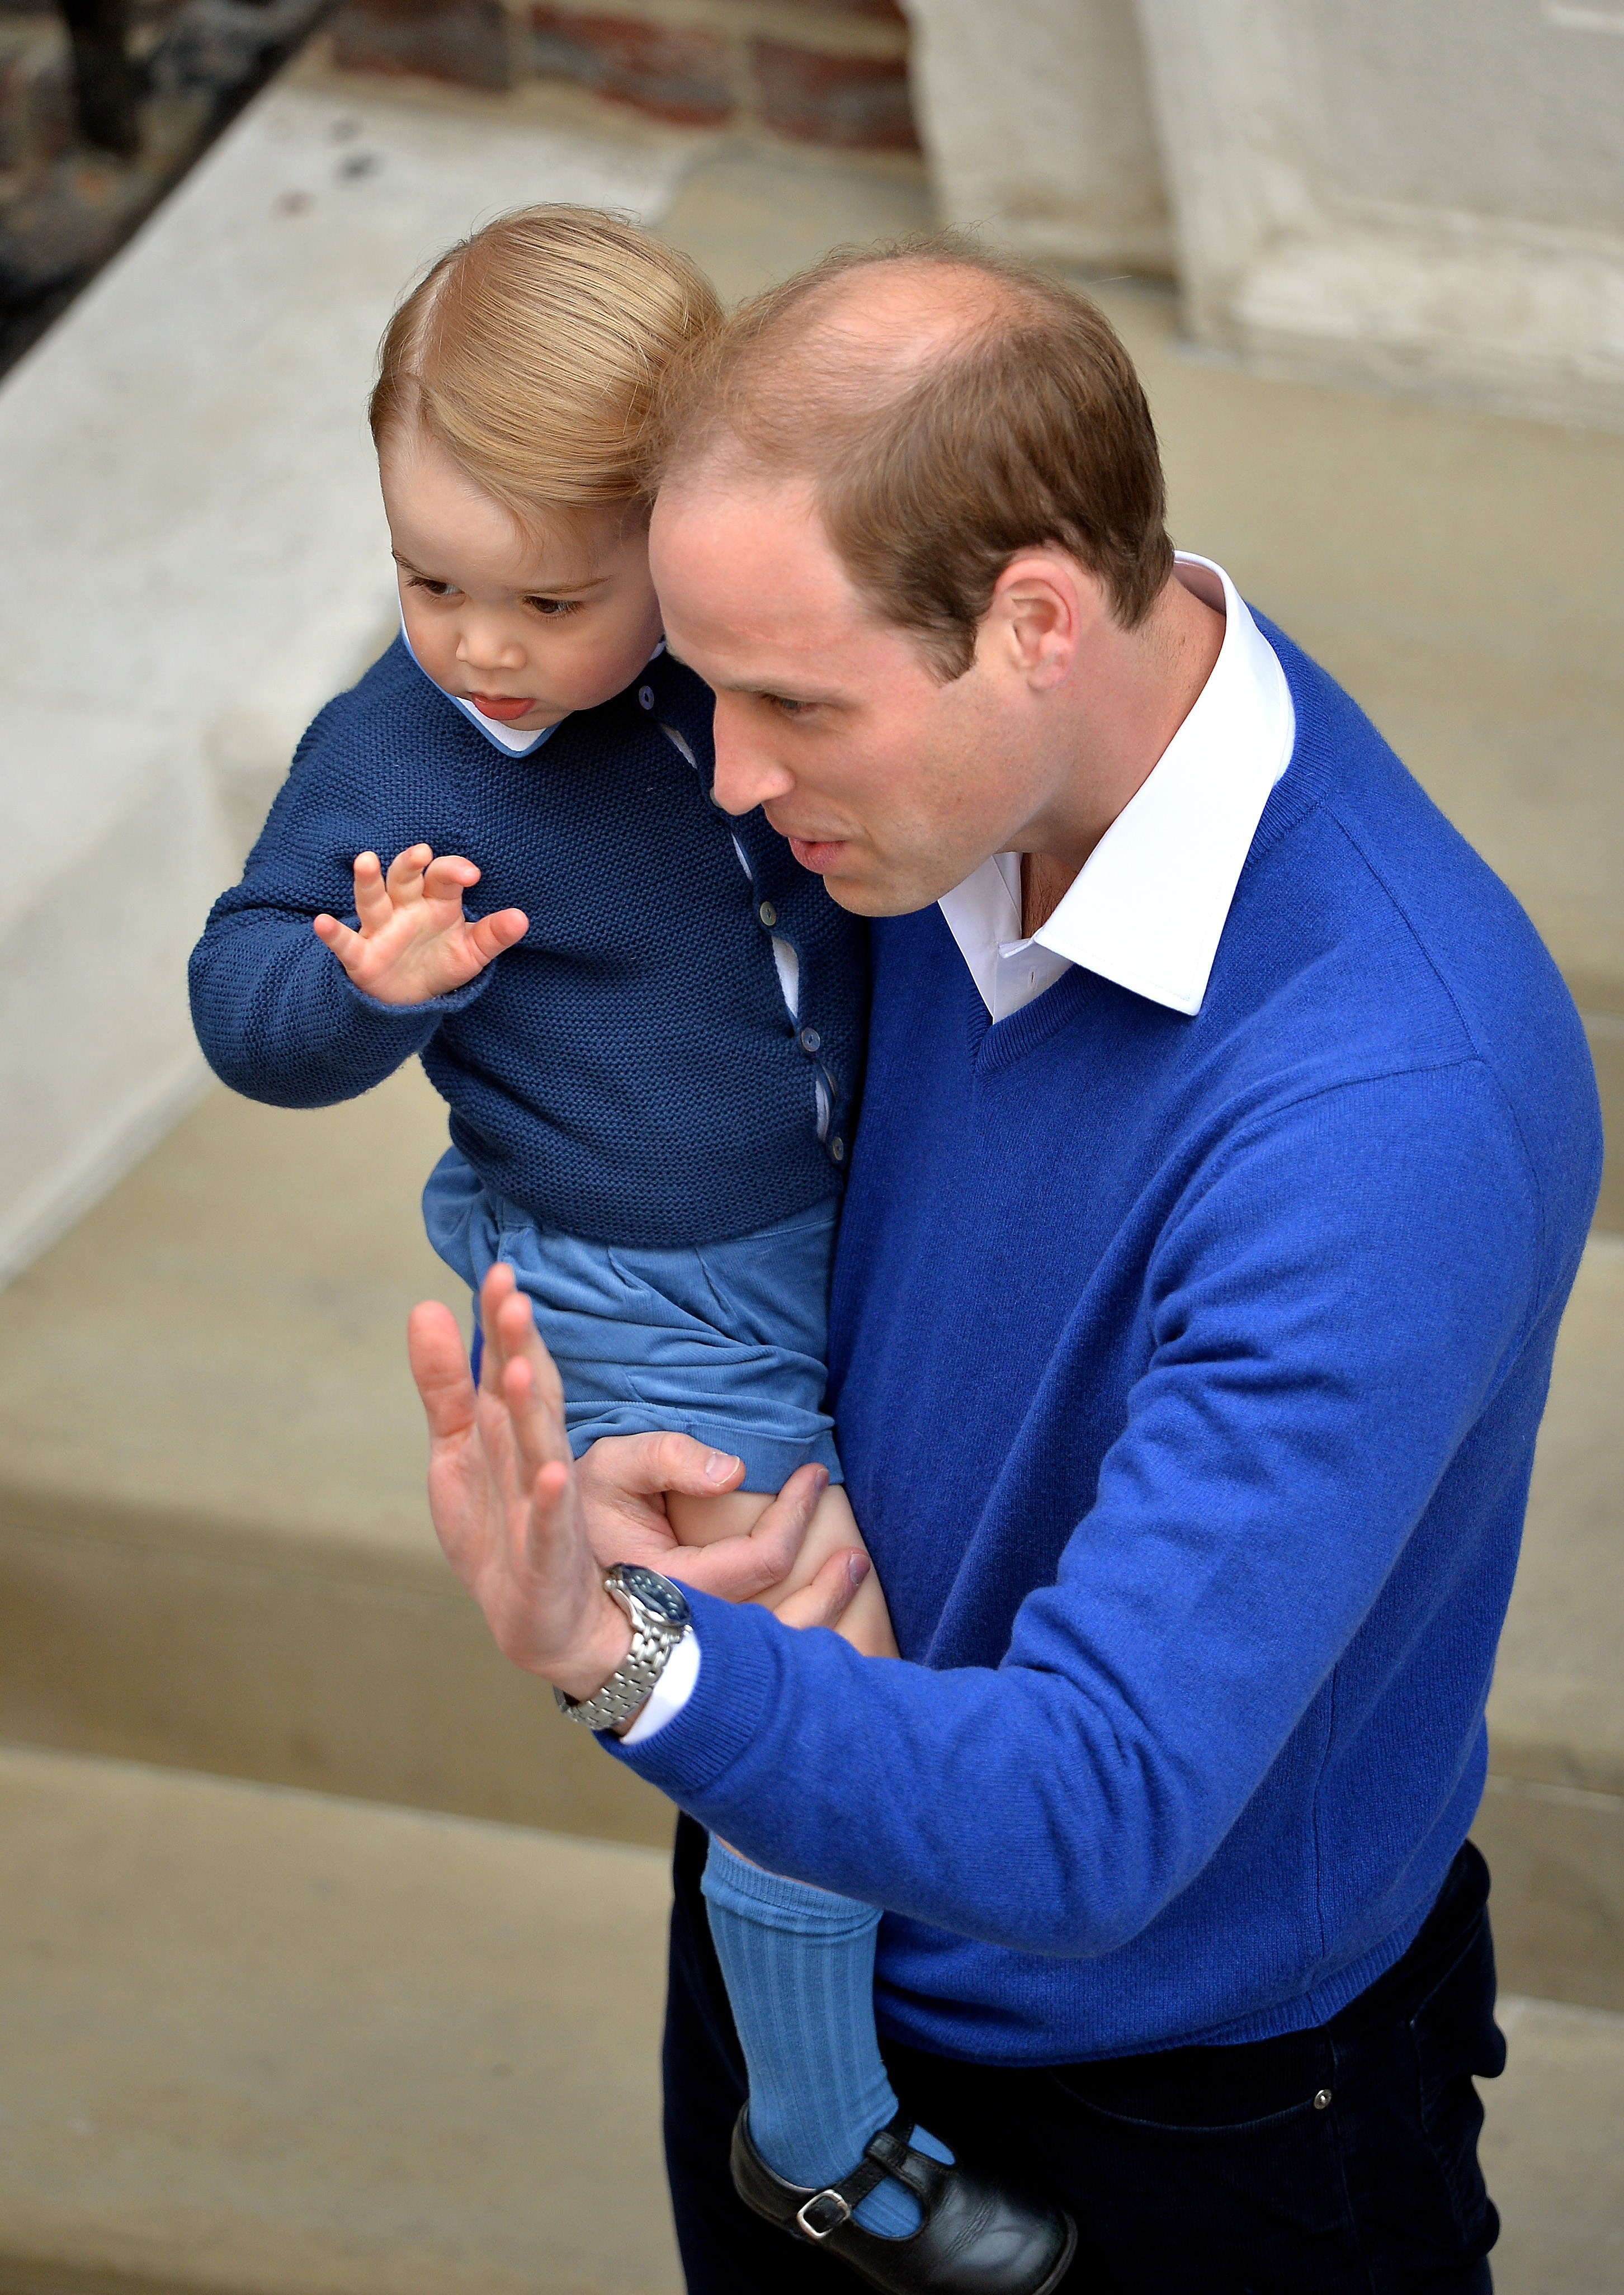 Britain's Prince William, Duke of Cambridge (R), and his son Prince George of Cambridge (L) wave as they return to the Lindo Wing at St Mary's Hospital in central London, on May 2, 2015 where his wife Catherine, Duchess of Cambridge, gave birth to their second child, a baby girl, earlier in the day. The Duchess of Cambridge was safely delivered of a daughter weighing 8lbs 3oz, Kensington Palace announced. The newly-born Princess of Cambridge is fourth in line to the British throne. AFP PHOTO / POOL / JOHN STILLWELL (Photo credit should read JOHN STILLWELL/AFP/Getty Images)